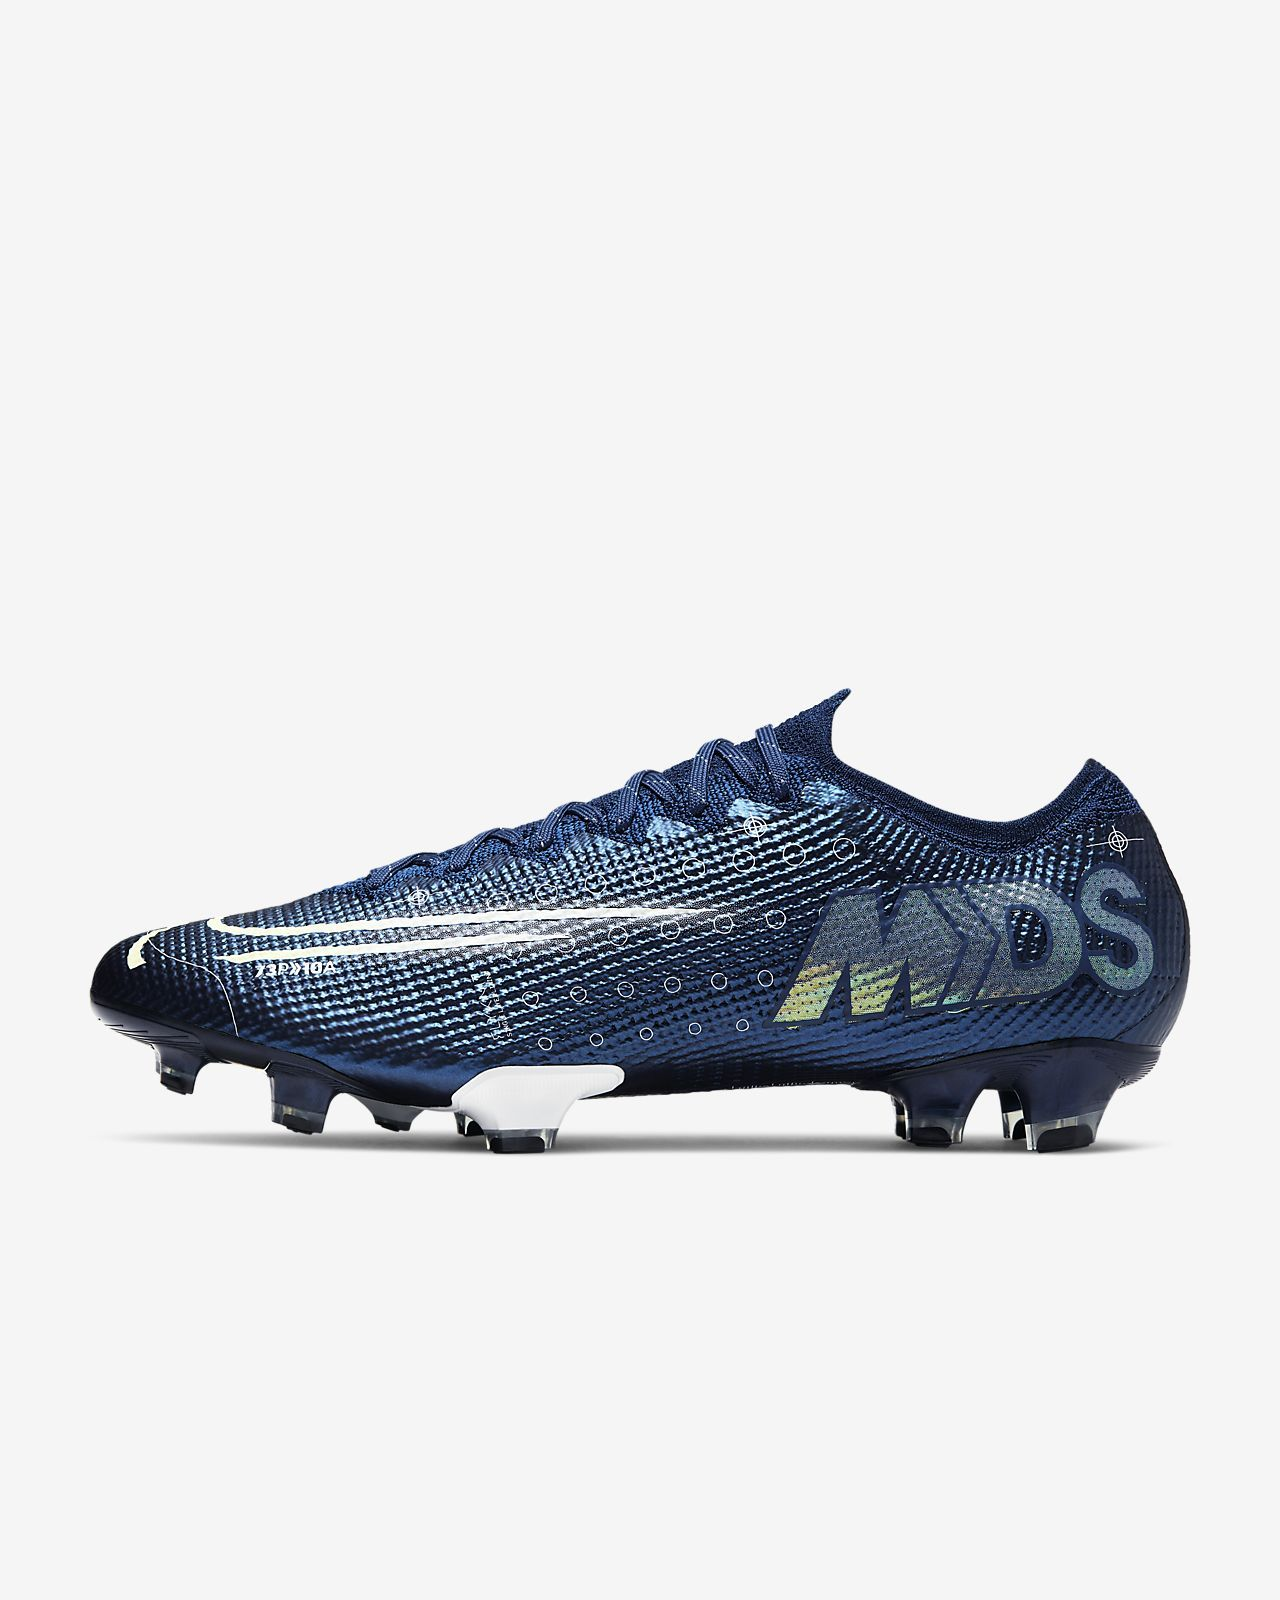 Mercurial Vapor 13 Elite Mds Fg Firm Ground Soccer Cleat With Images Soccer Cleats Football Boots